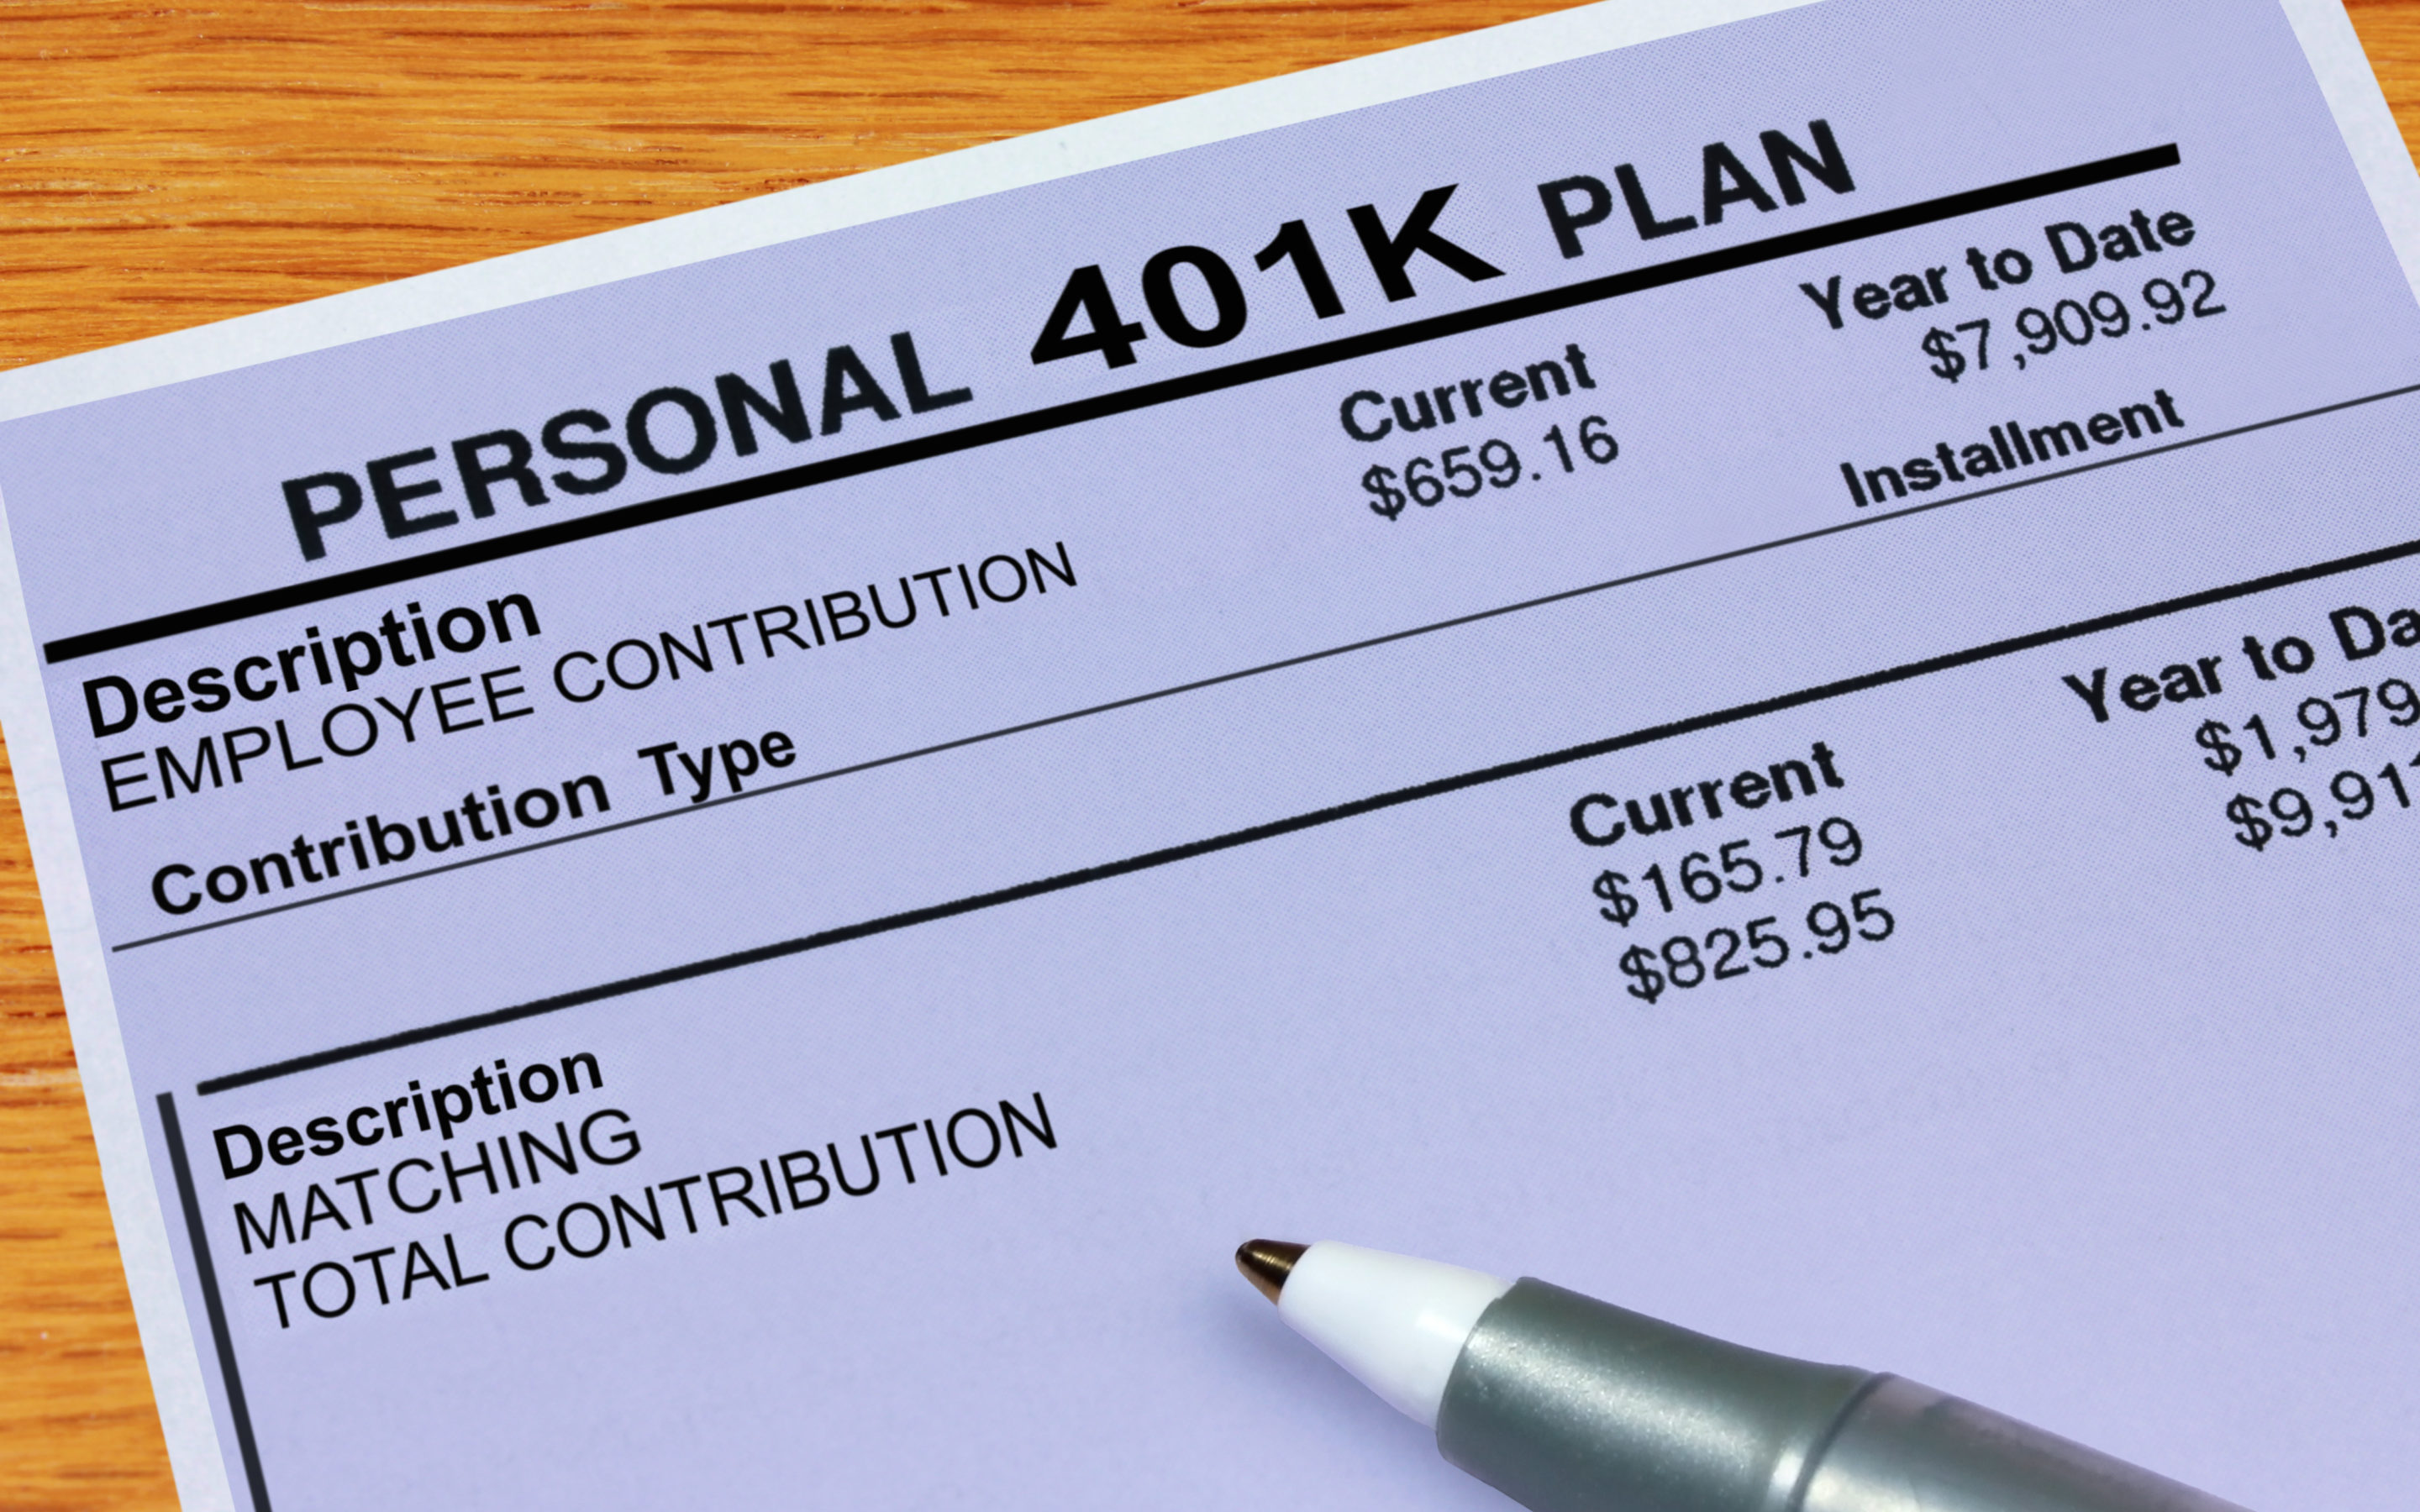 I Left My Job.  What Can My Former Employer Do With My Retirement Account?